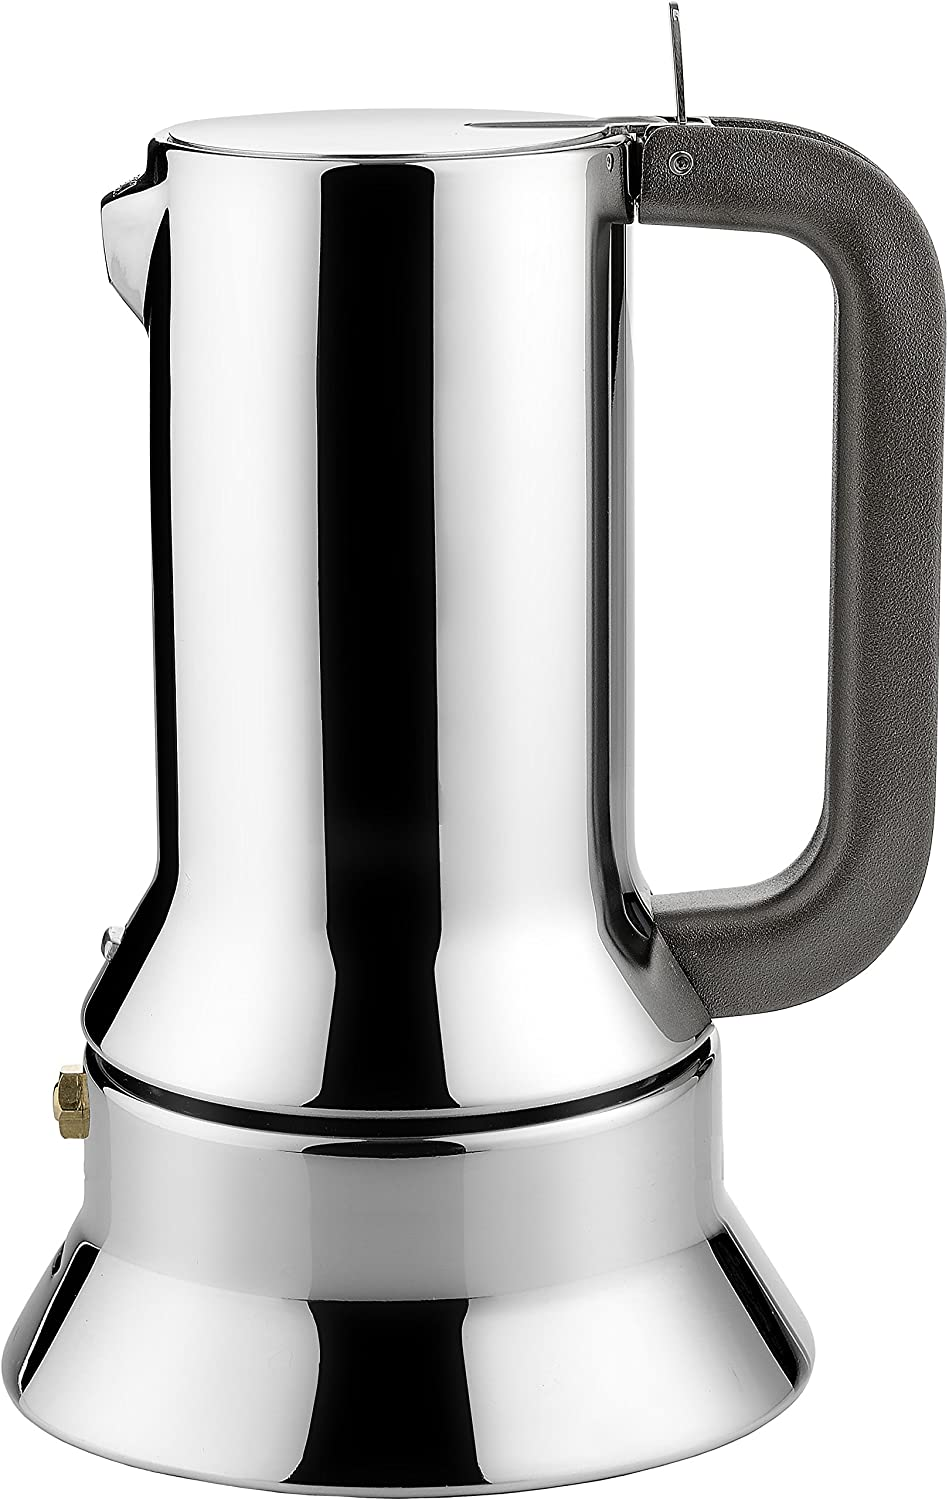 Stainless steel stovetop espresso maker 10 cup - Amazon Com 9090 By Richard Sapper 6 3 Cups Stovetop Espresso Pots Kitchen Dining